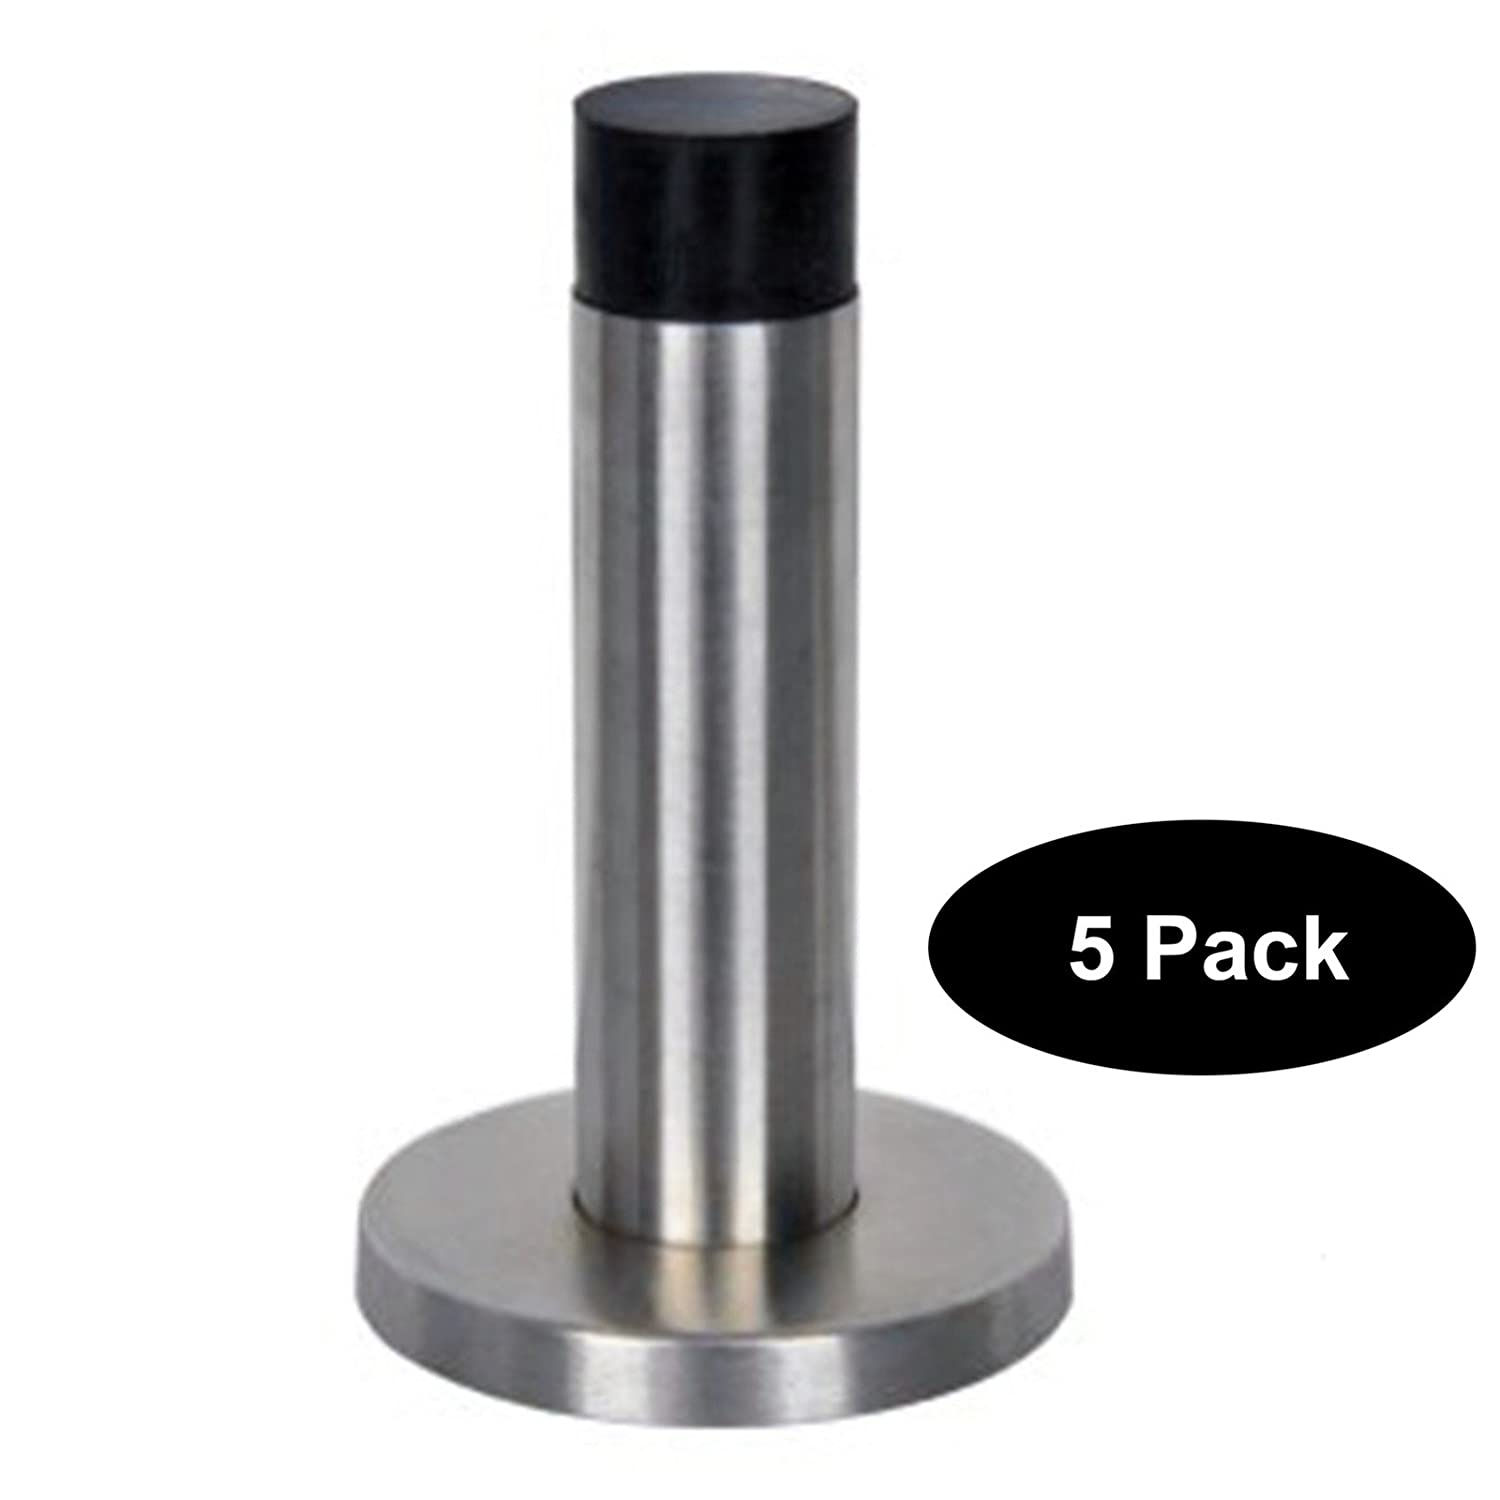 5 PCS Stainless Steel Rubber Door Stopper Stop Security Bar Wedge Brushed Satin Nickel Projection 85mm 3-2//5